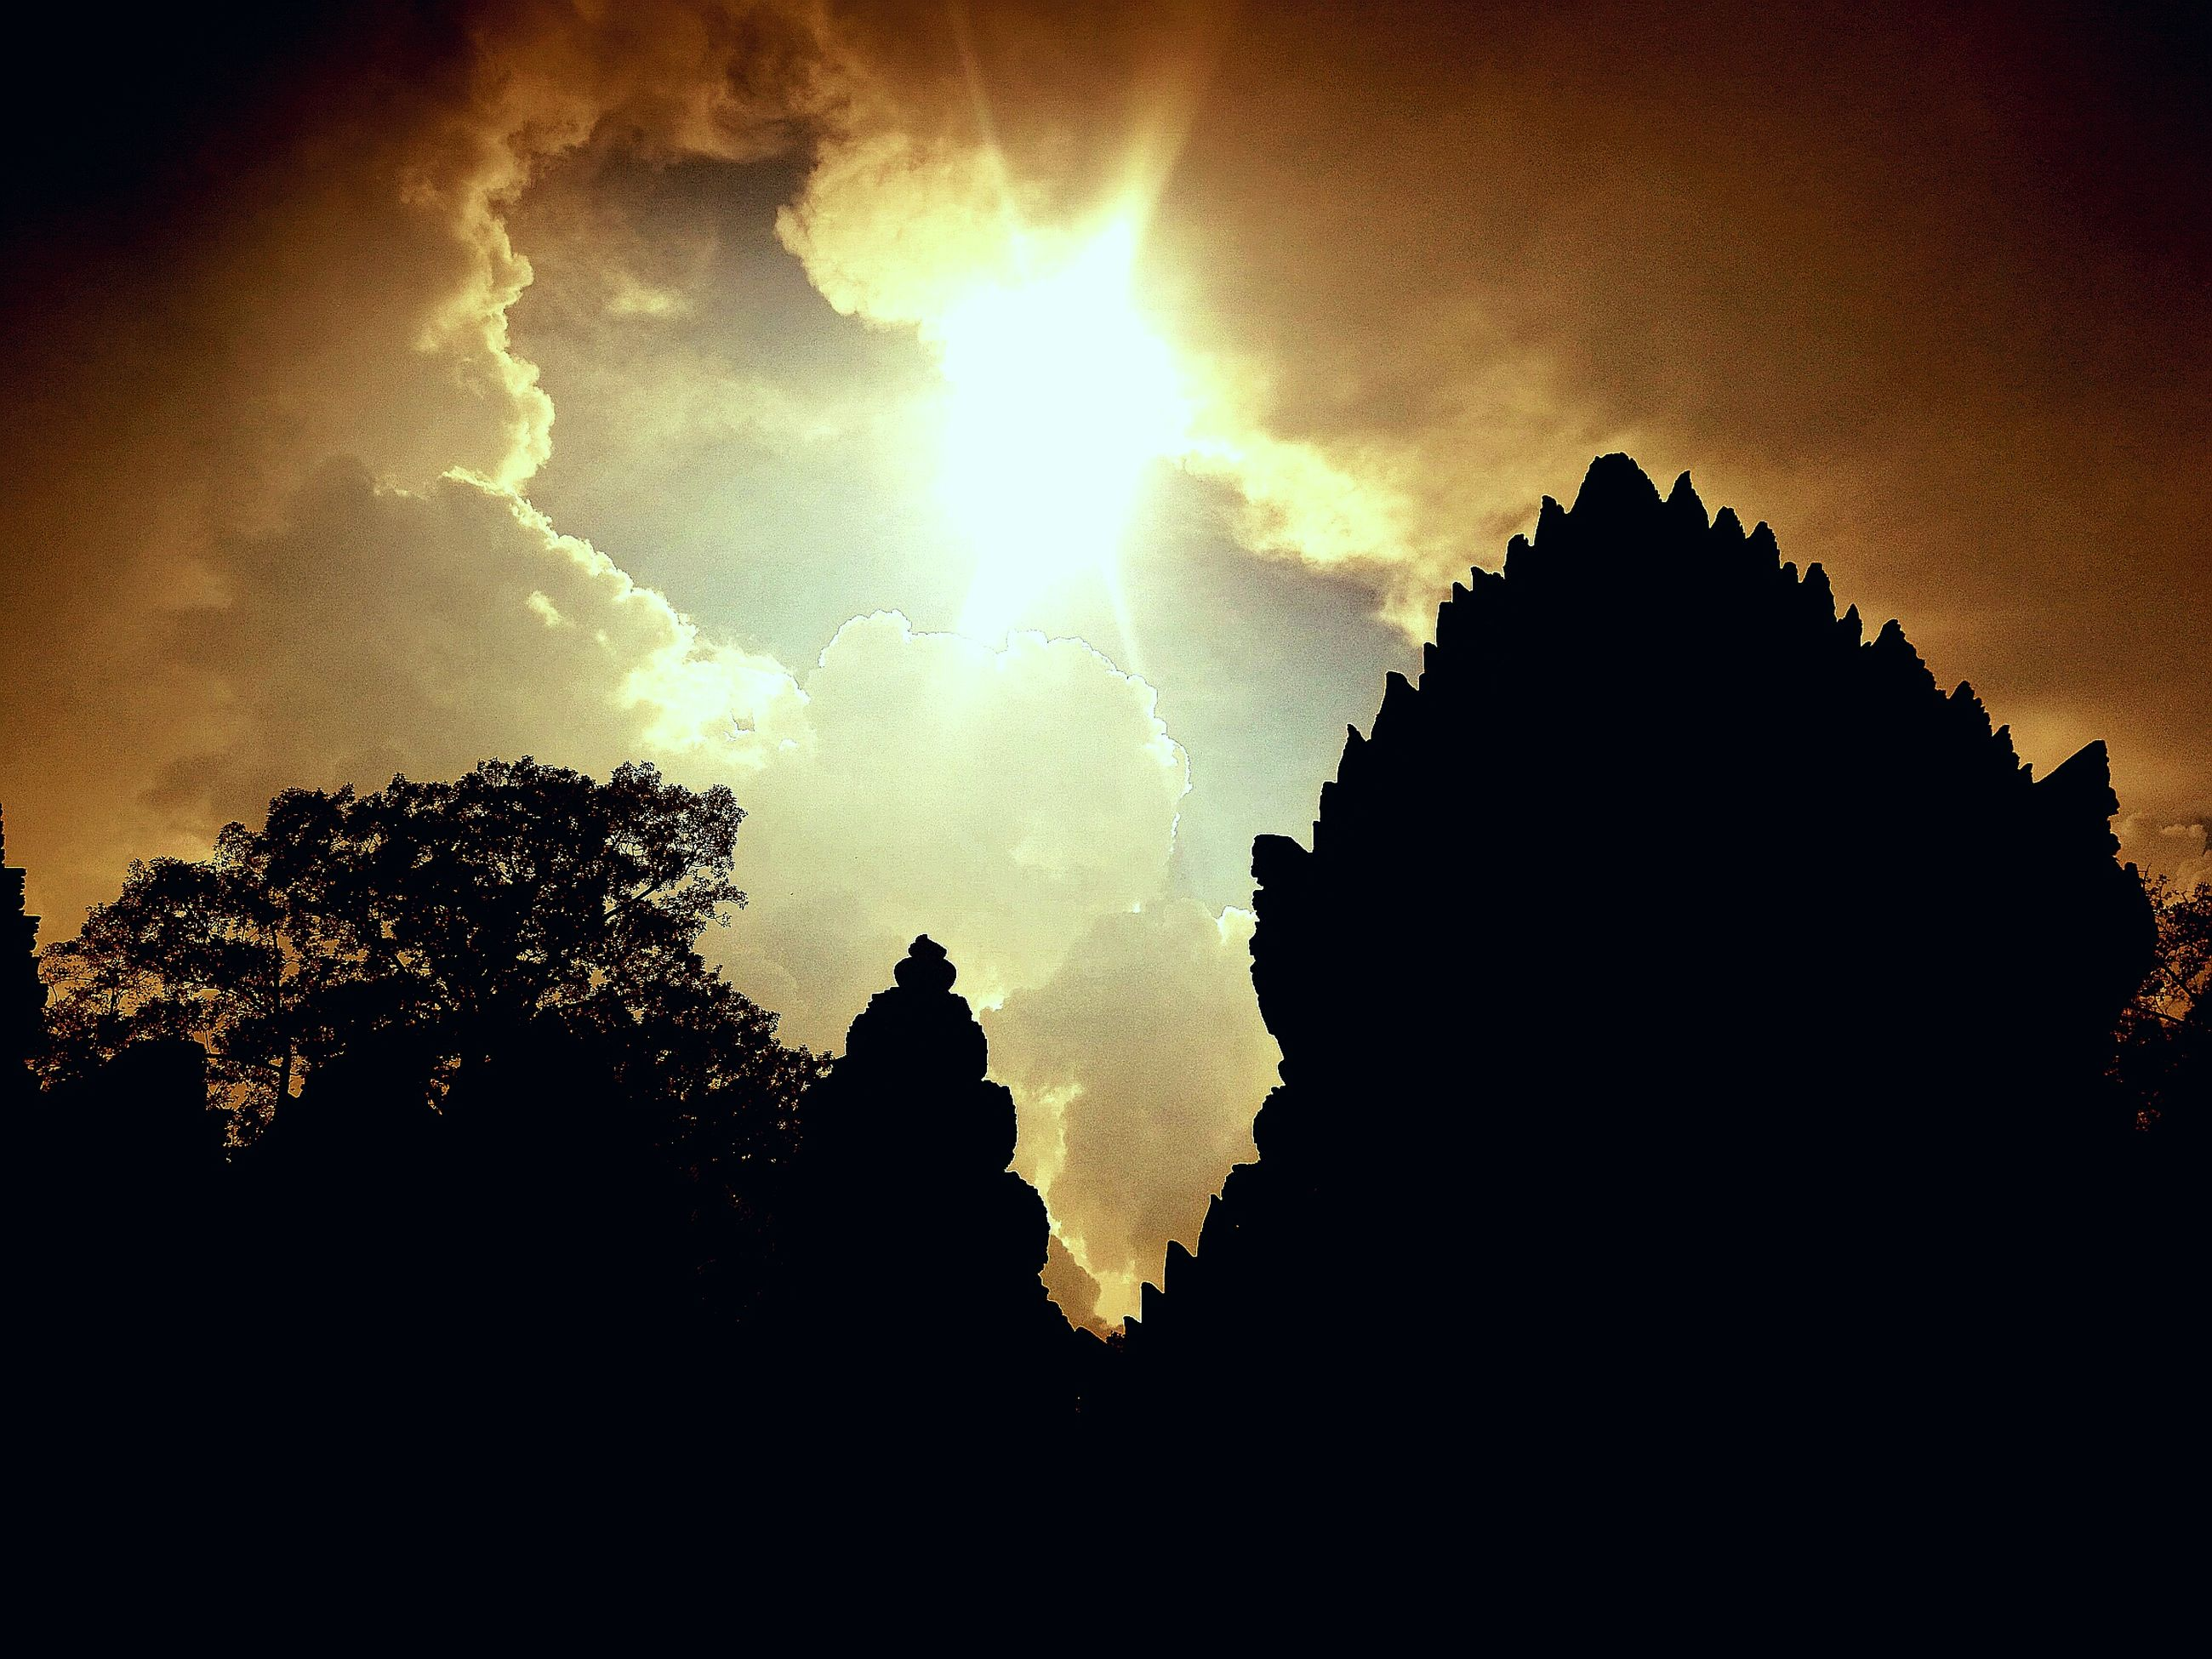 silhouette, tree, low angle view, outline, sky, cloud, outdoors, nature, tranquility, no people, solitude